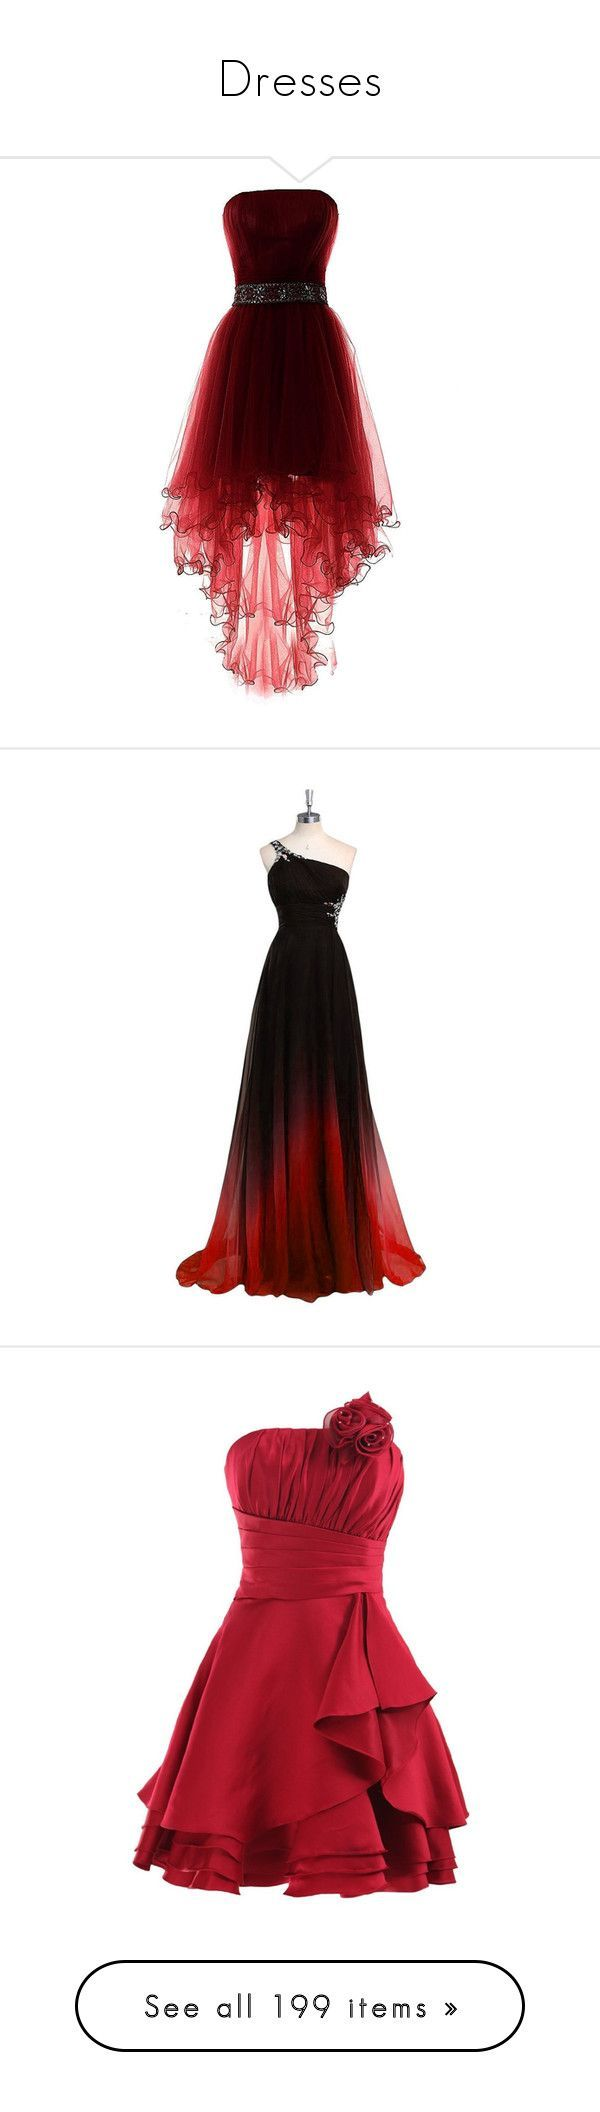 """Dresses"" by bluwolf751 ❤ liked on Polyvore featuring dresses, gowns, short fr... 1"